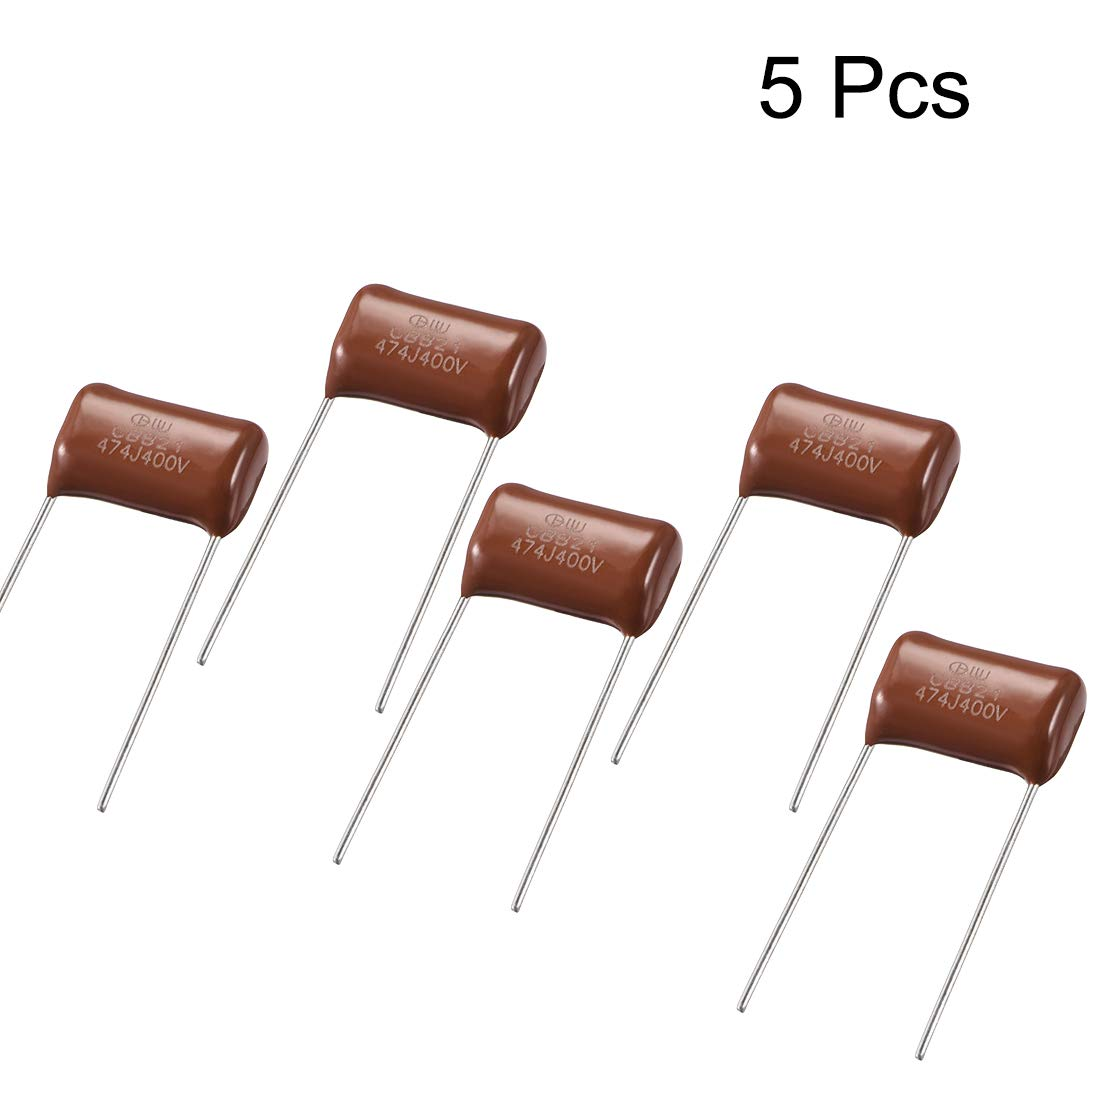 uxcell CBB21 Metallized Polypropylene Film Capacitors 400V 0.47uF for Electric Circuits Energy Saving Lamps Pack of 5